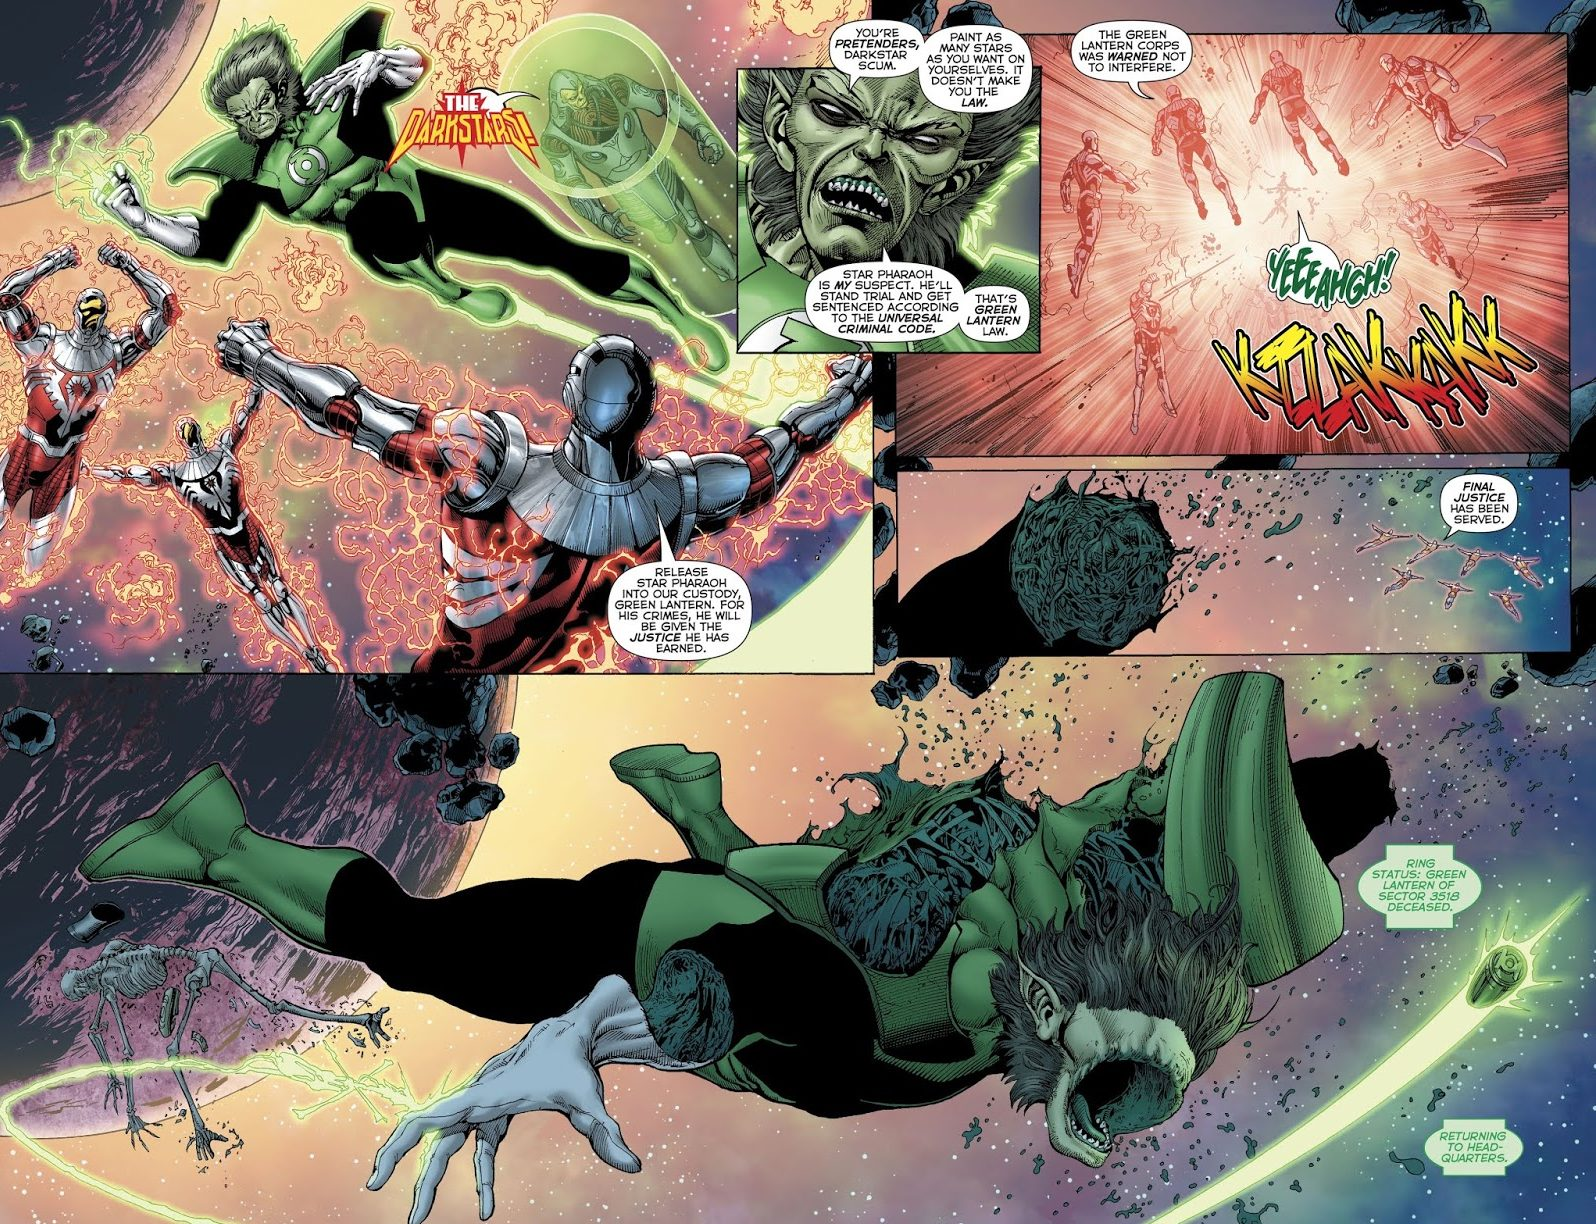 Darkstars Kill Green Lantern Weggett